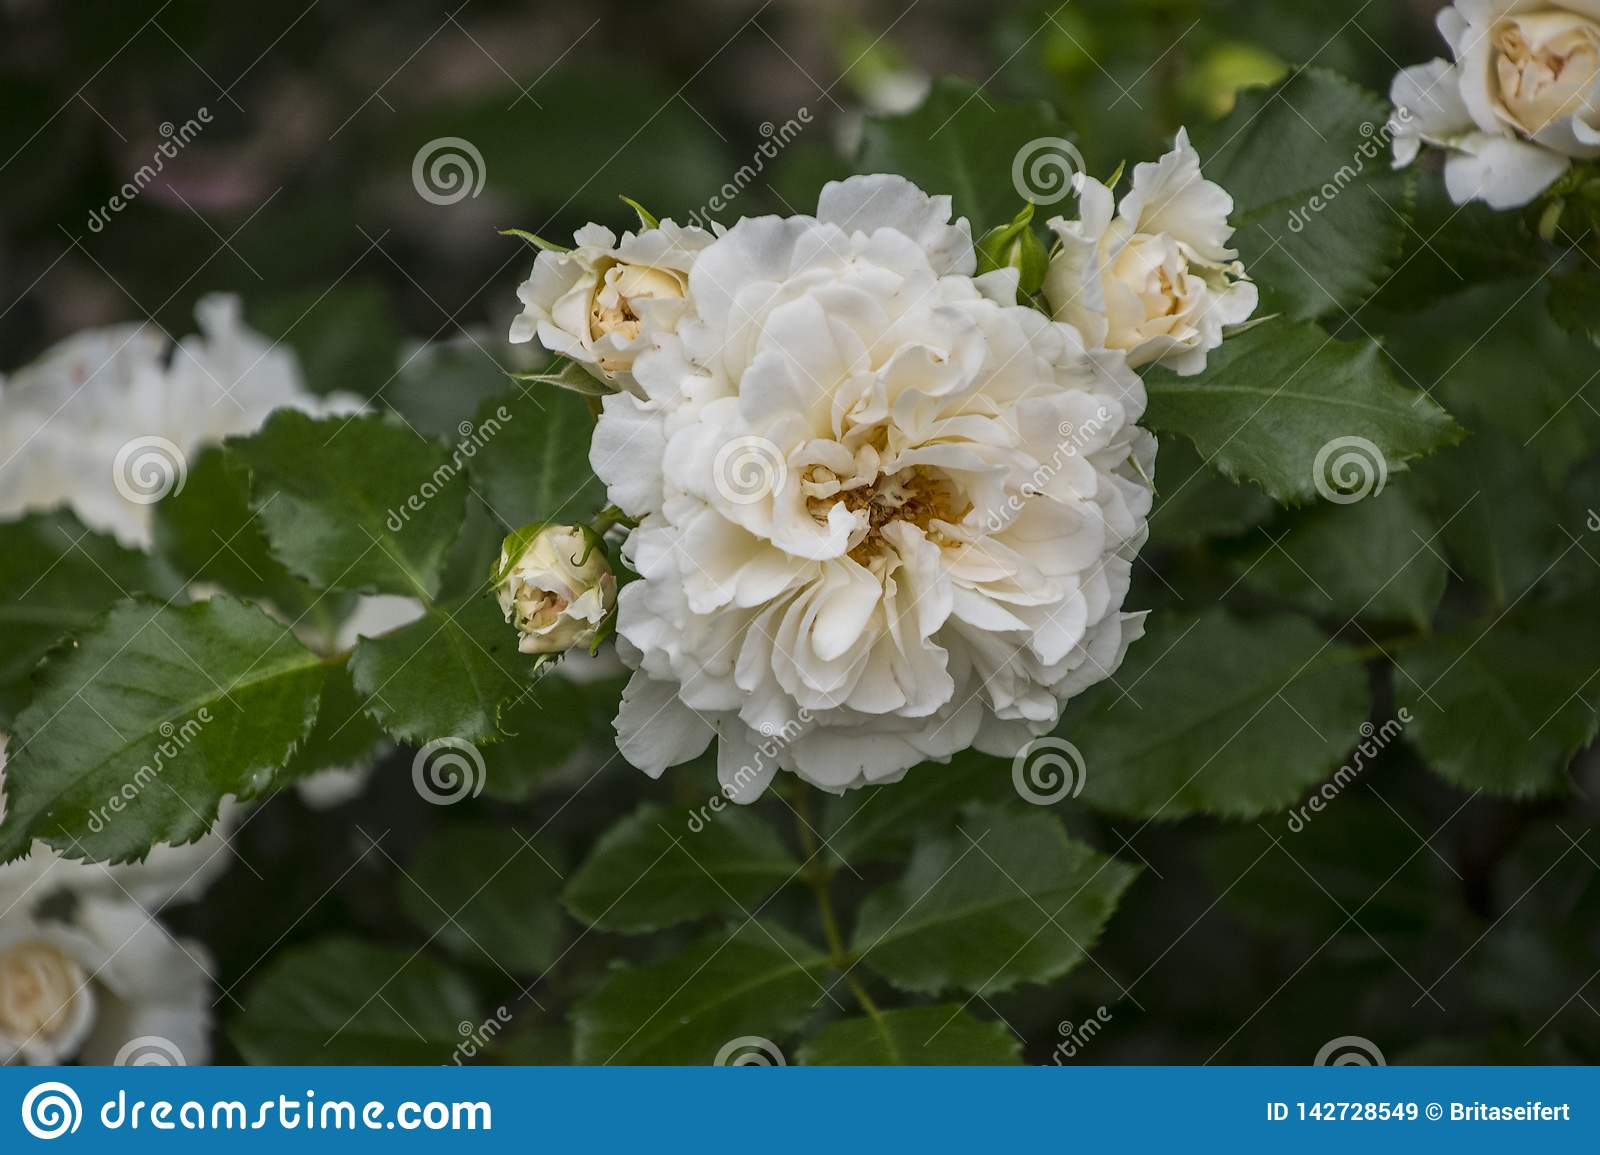 Rose flower closeup. Shallow depth of field. Spring flower of white rose royalty free stock images